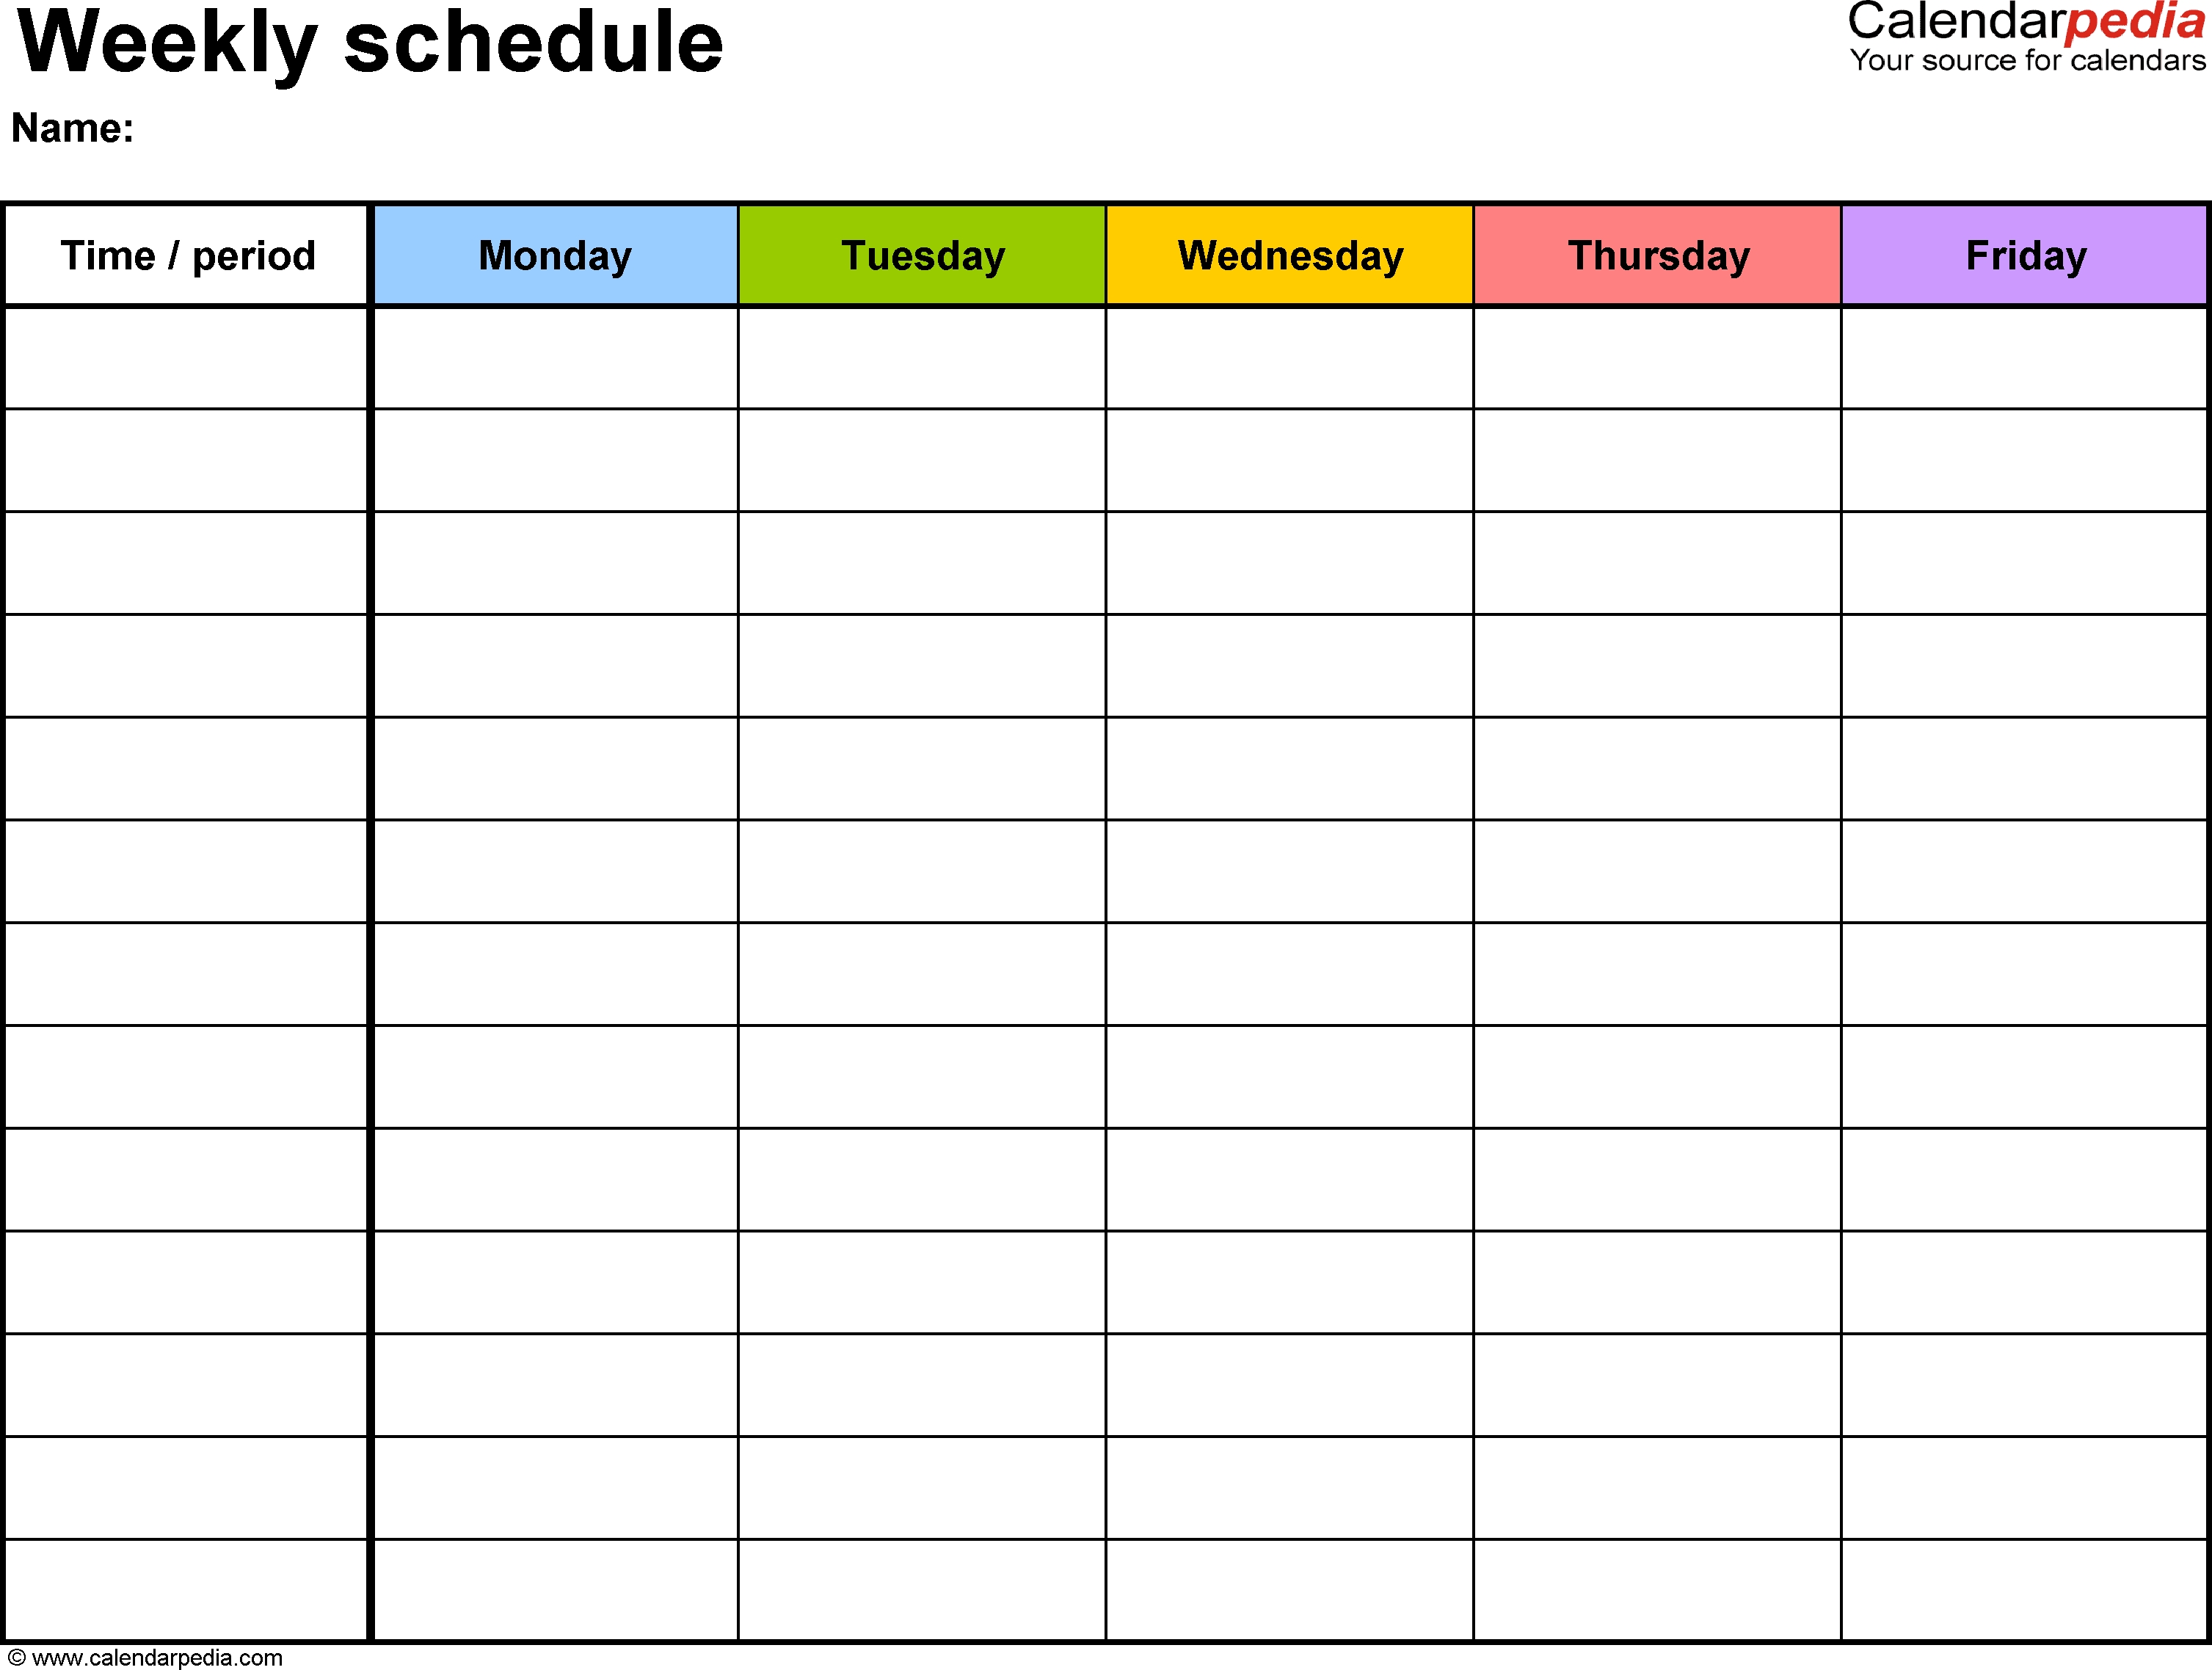 Free Weekly Schedule Templates For Word - 18 Templates with regard to 1 Week Blank Calendar Template